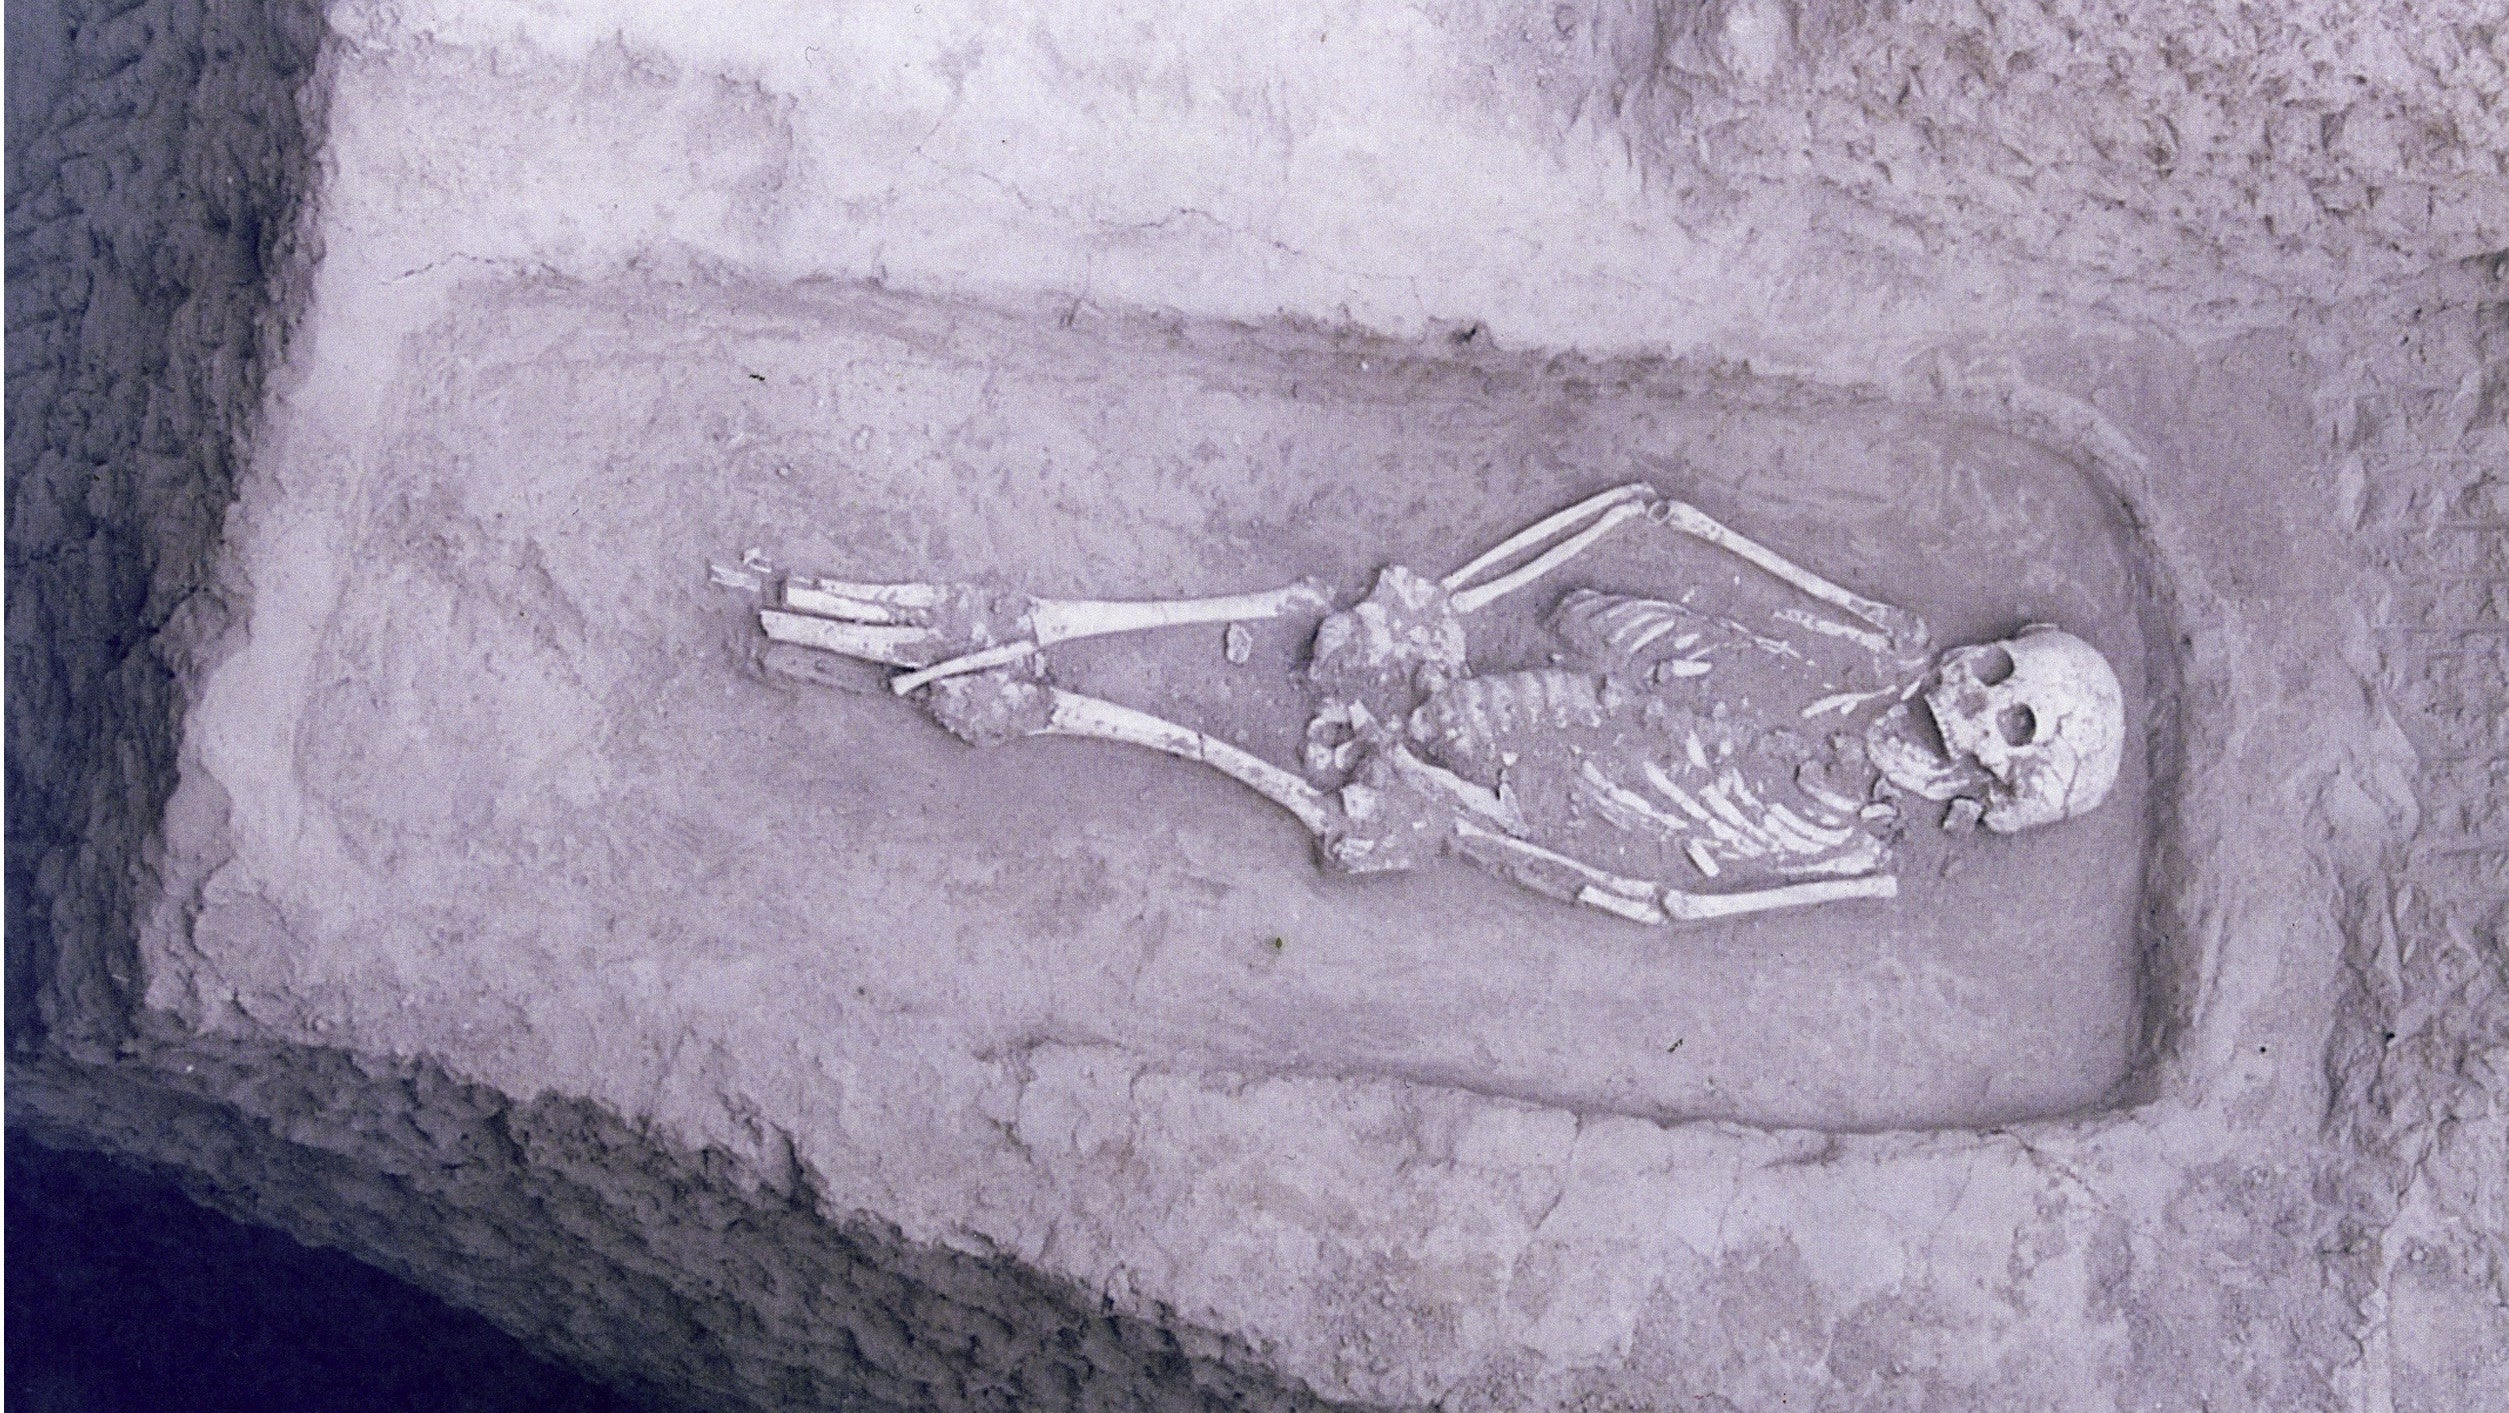 Rare Skeleton Points To Compassion, Care, And Tragedy In Prehistoric China